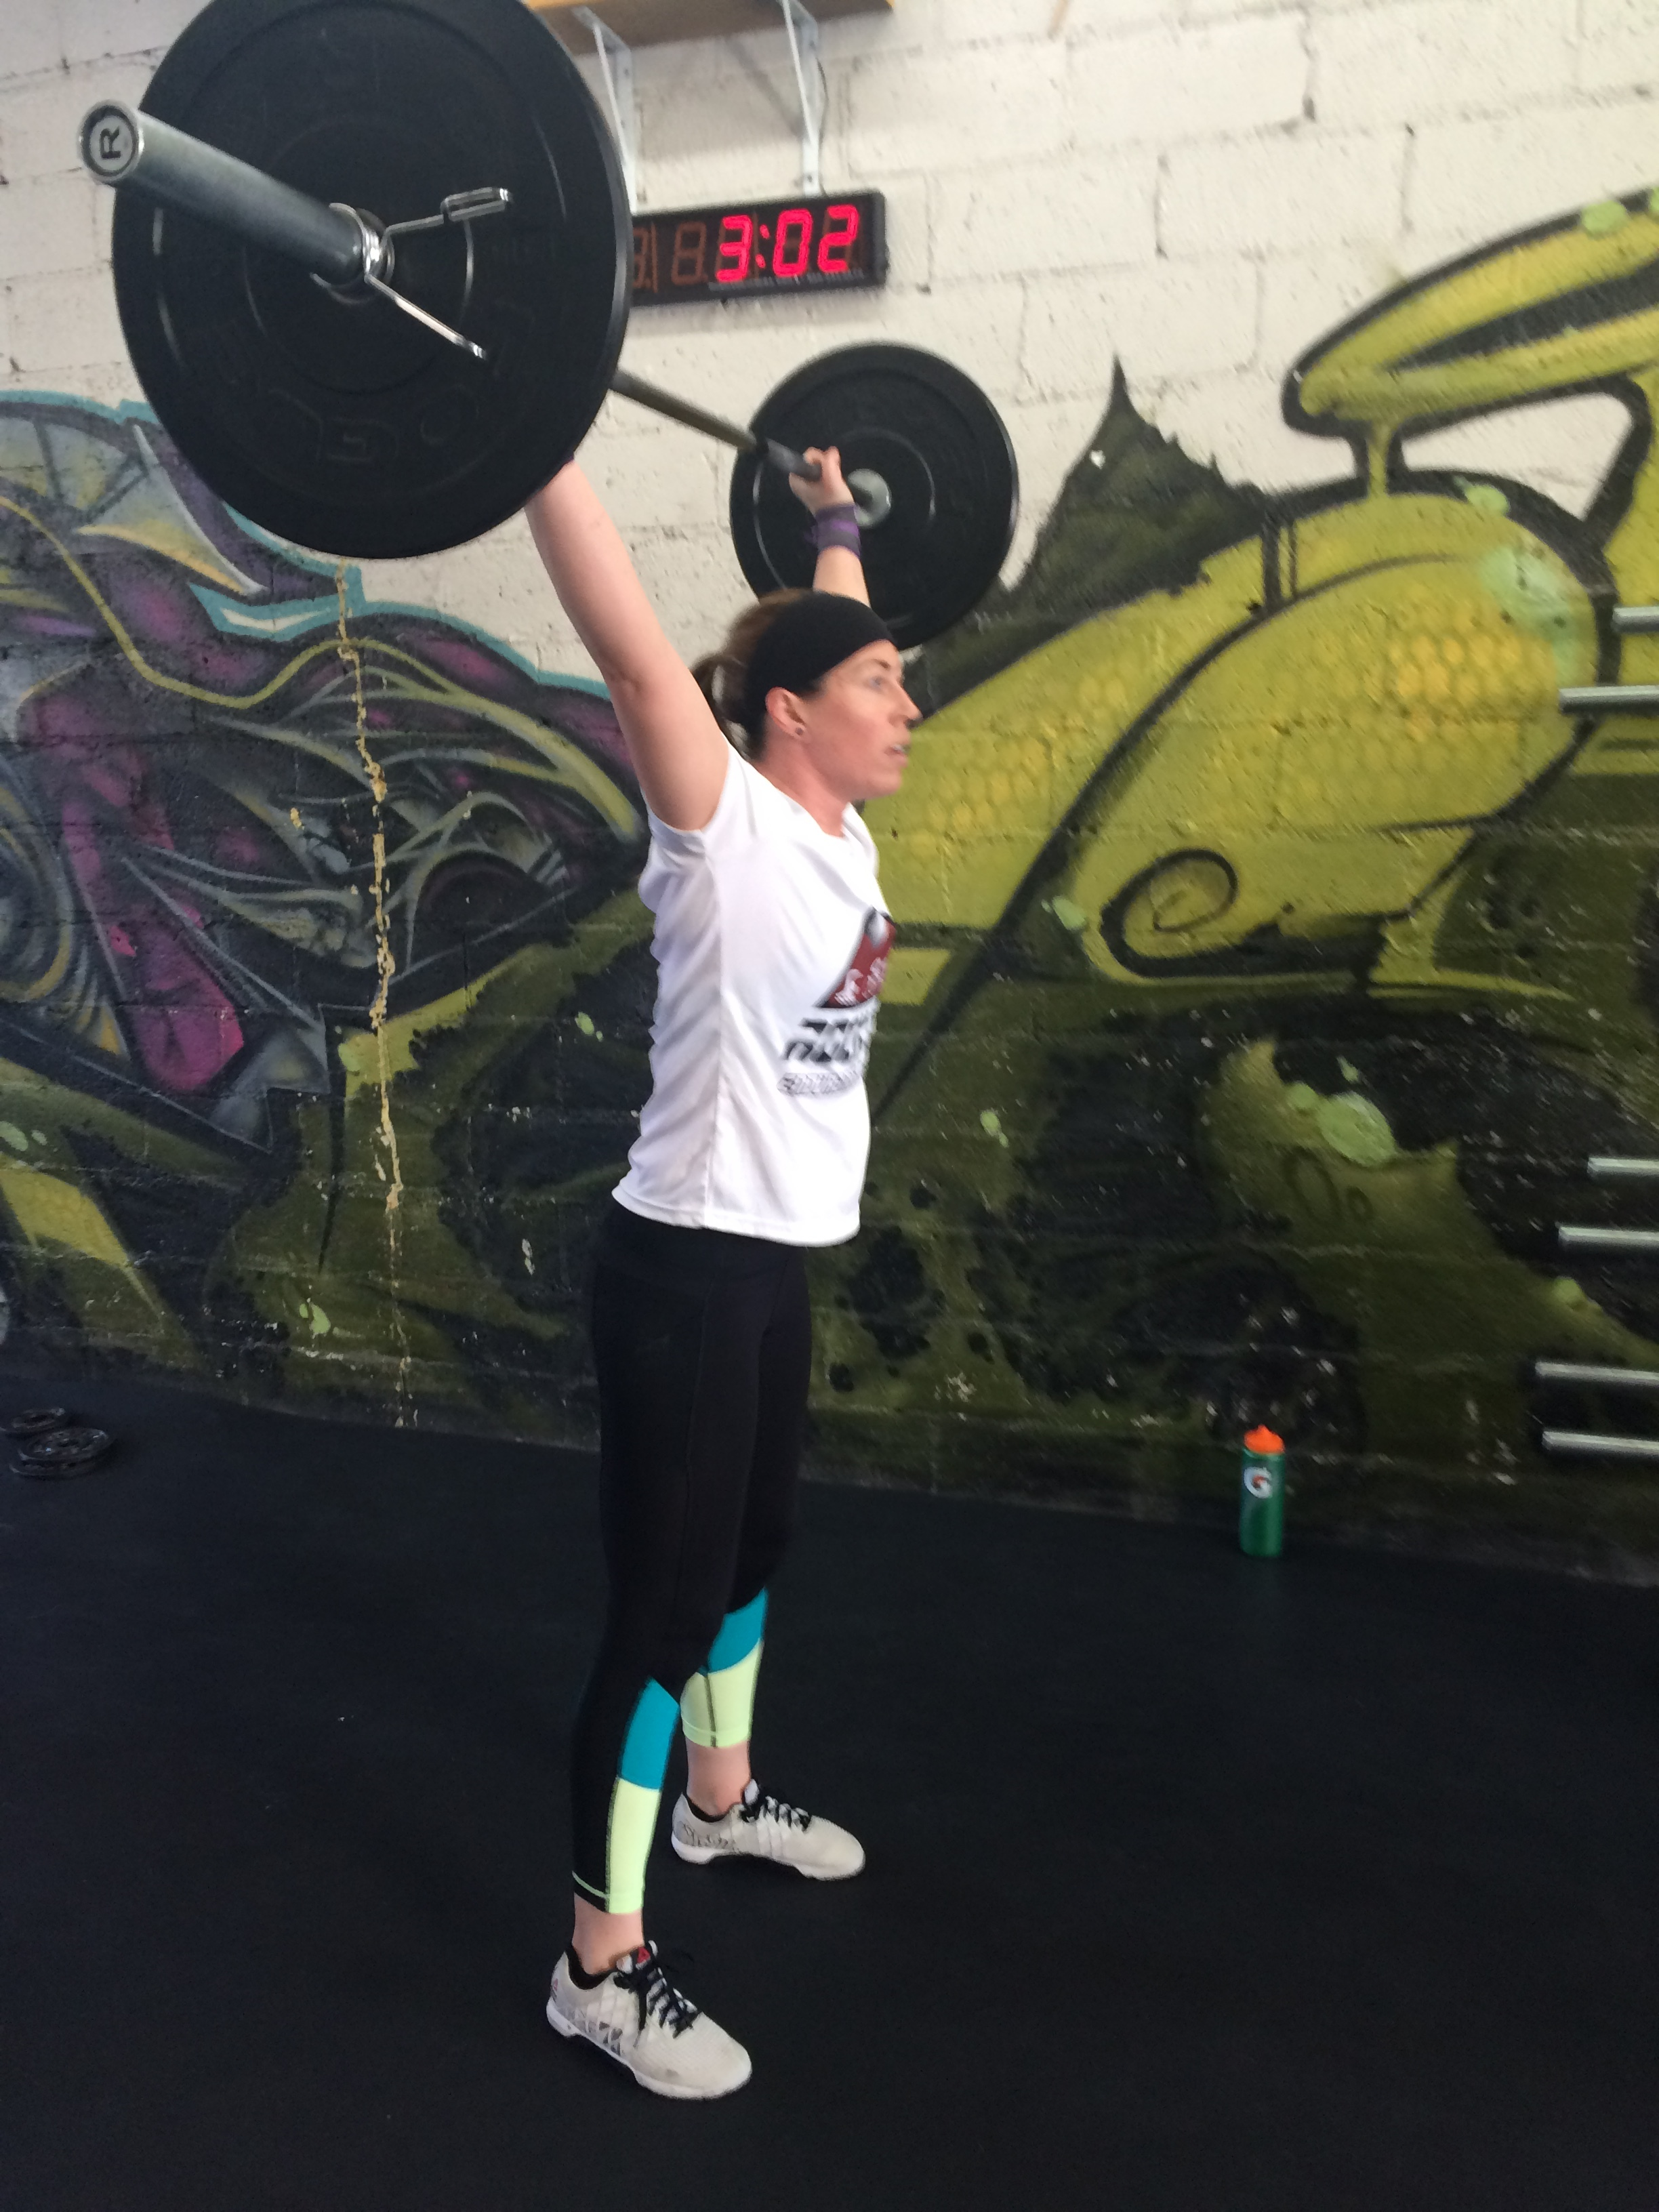 Karen is new to Catacombs, but she is a seasoned CrossFitter who has specialized in mobility for years. She is leading the Mobility Clinic.